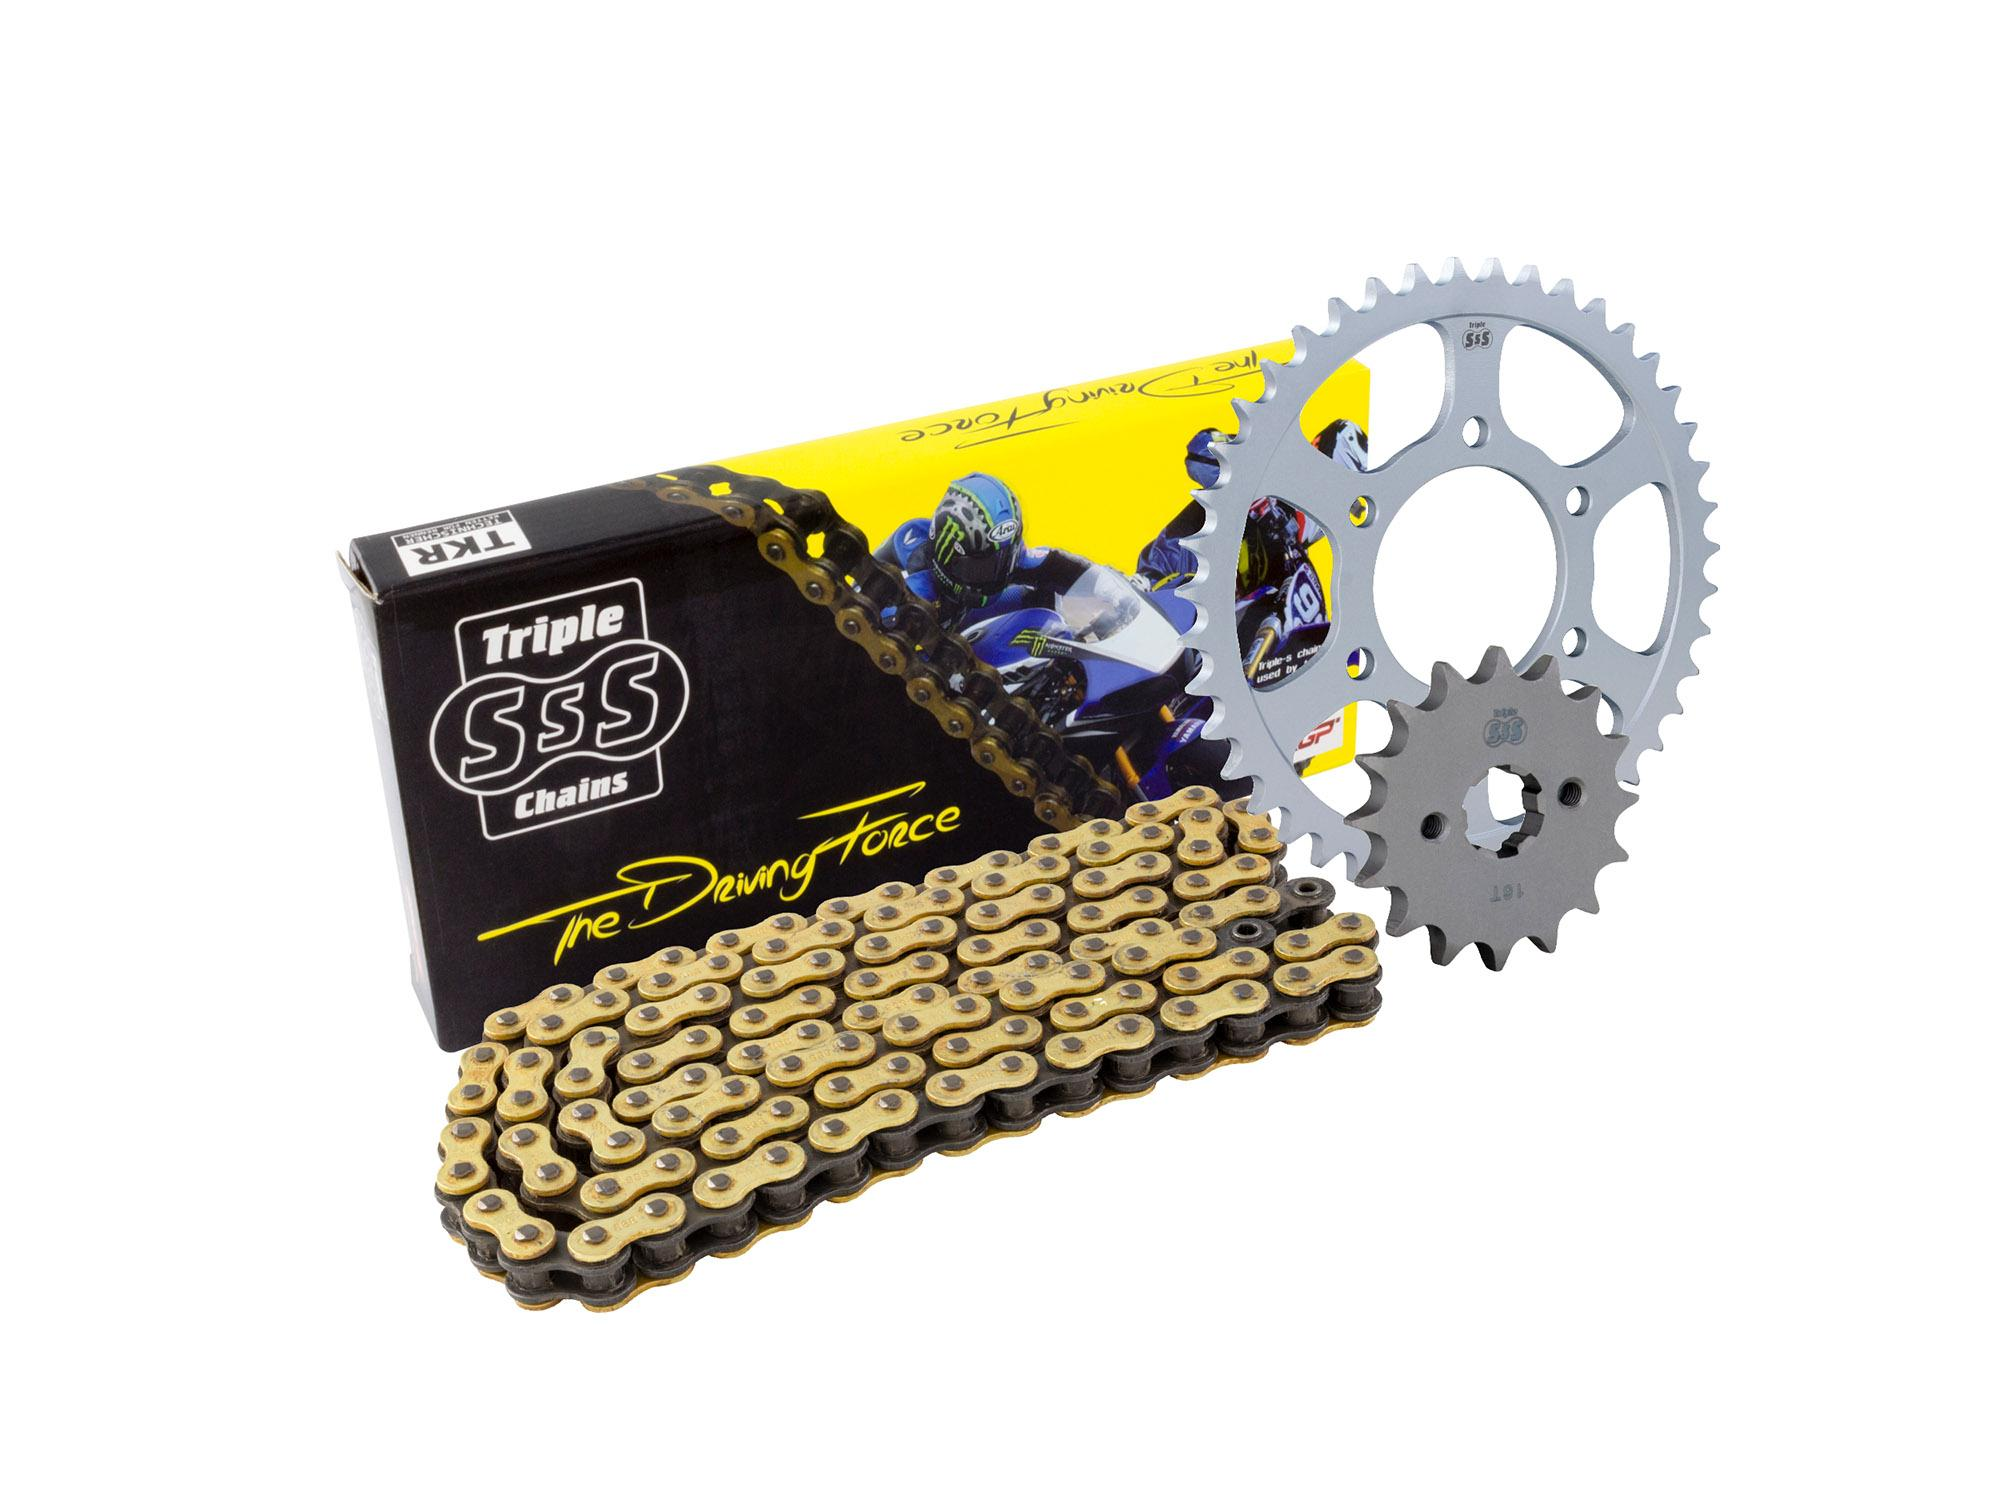 Ducati 1000 Monster S ie 04-05 Chain & Sprocket Kit: 15T Front, 39T Rear, HD O-Ring Gold Chain 525H 100Link